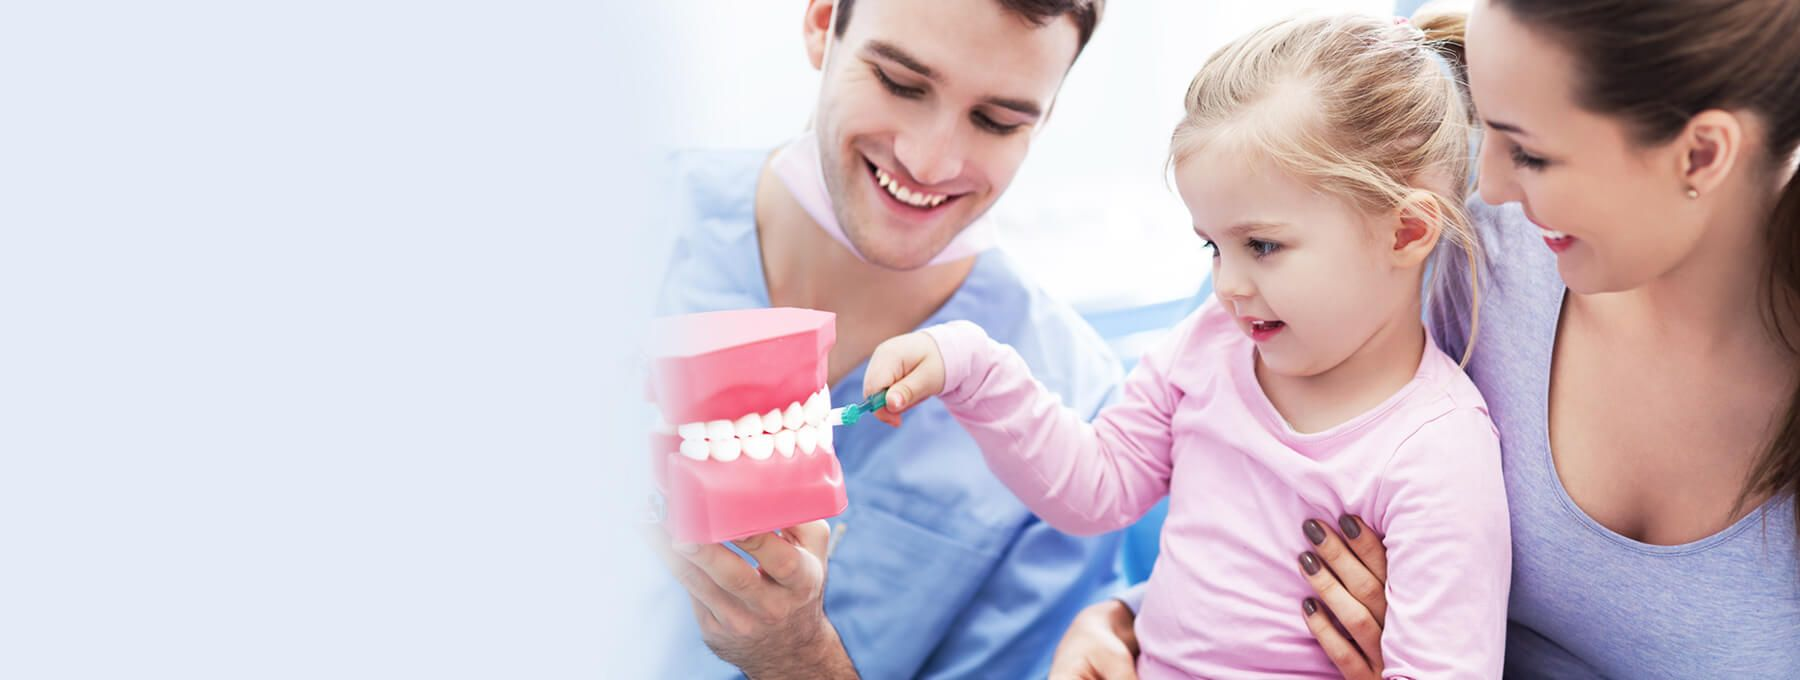 Best dental implants melbourne aims to provide implants